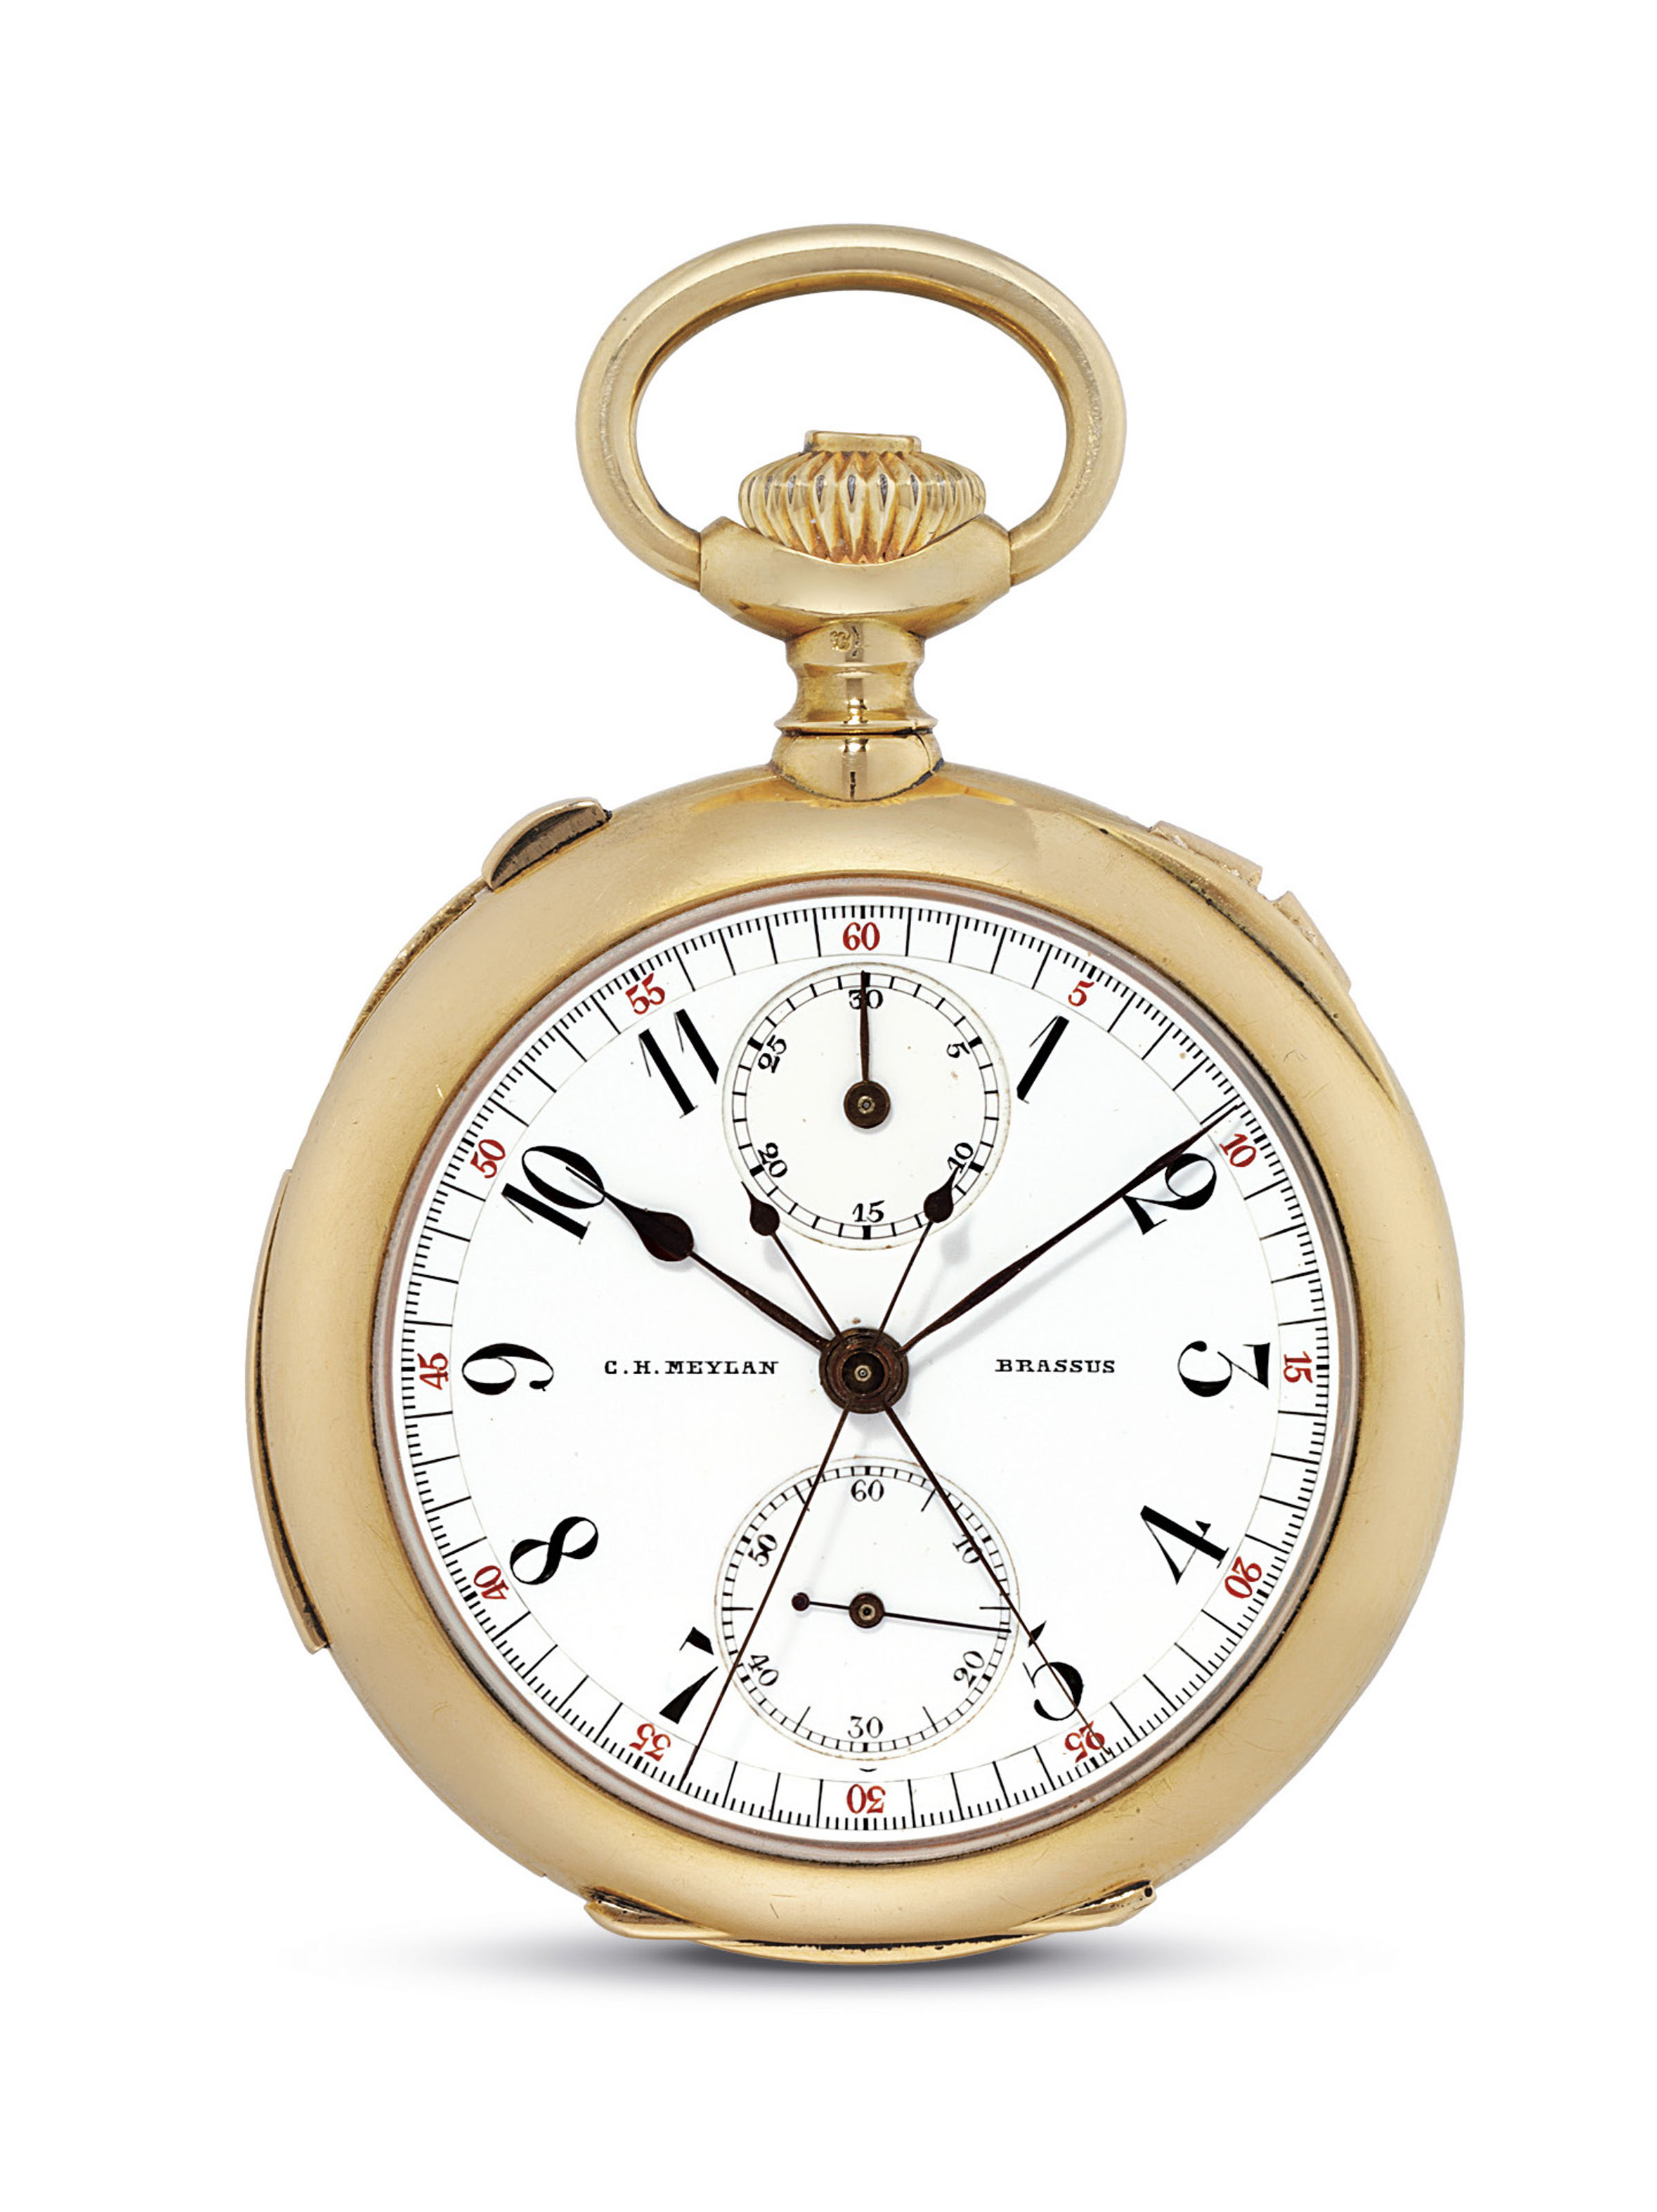 C.H. MEYLAN. A FINE AND RARE 18K GOLD OPENFACE MINUTE REPEATING SPLIT SECONDS CHRONOGRAPH KEYLESS LEVER WATCH